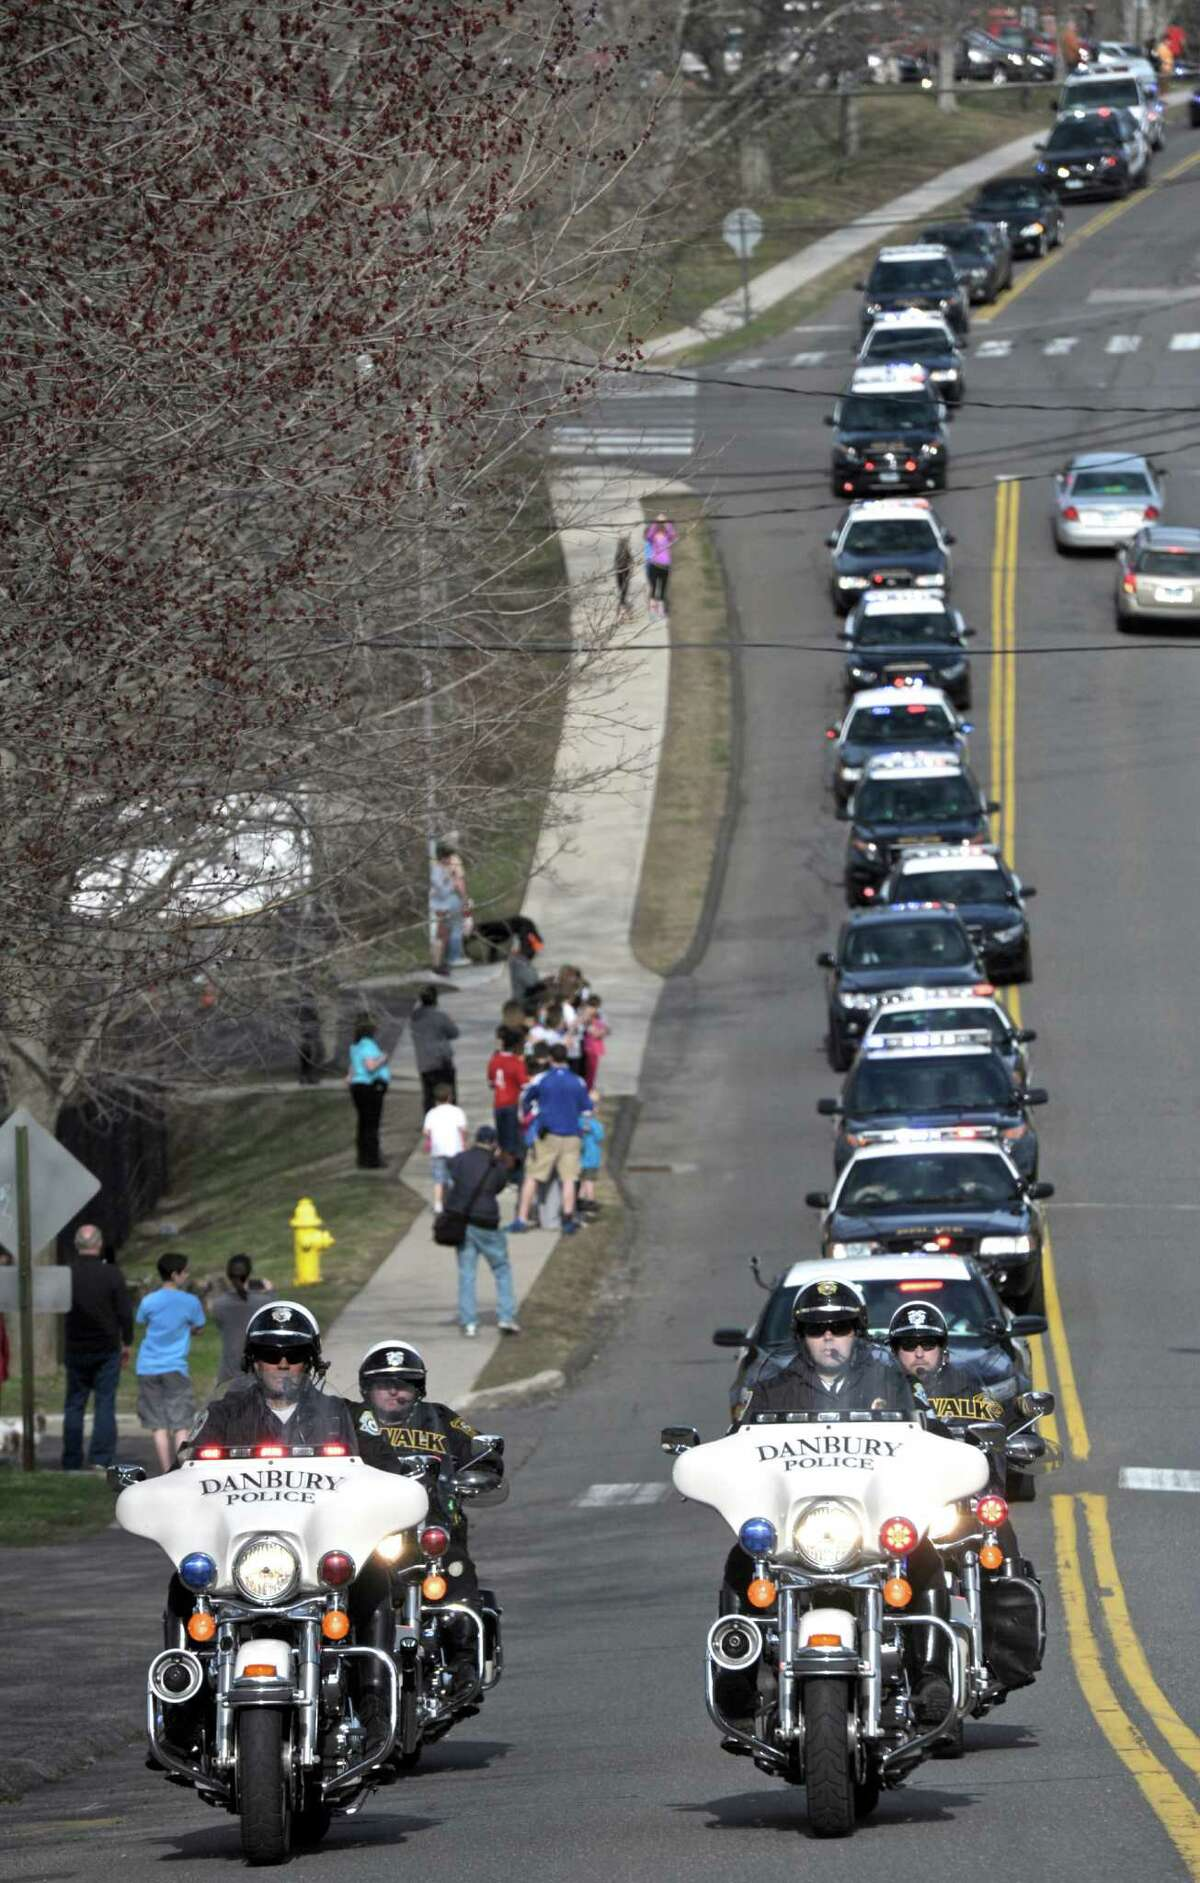 Zeus, a german shepherd who worked for the Ridgefield Police Department was honored with a final ride before being euthanized because of a severe degenerative hip disorder on Wednesday afternoon, April 15, 2015, in Ridgefield, Conn. The procession makes its way down Governor Street on its way to Main Street followed by the Ridgefield Veterinary Hospital.